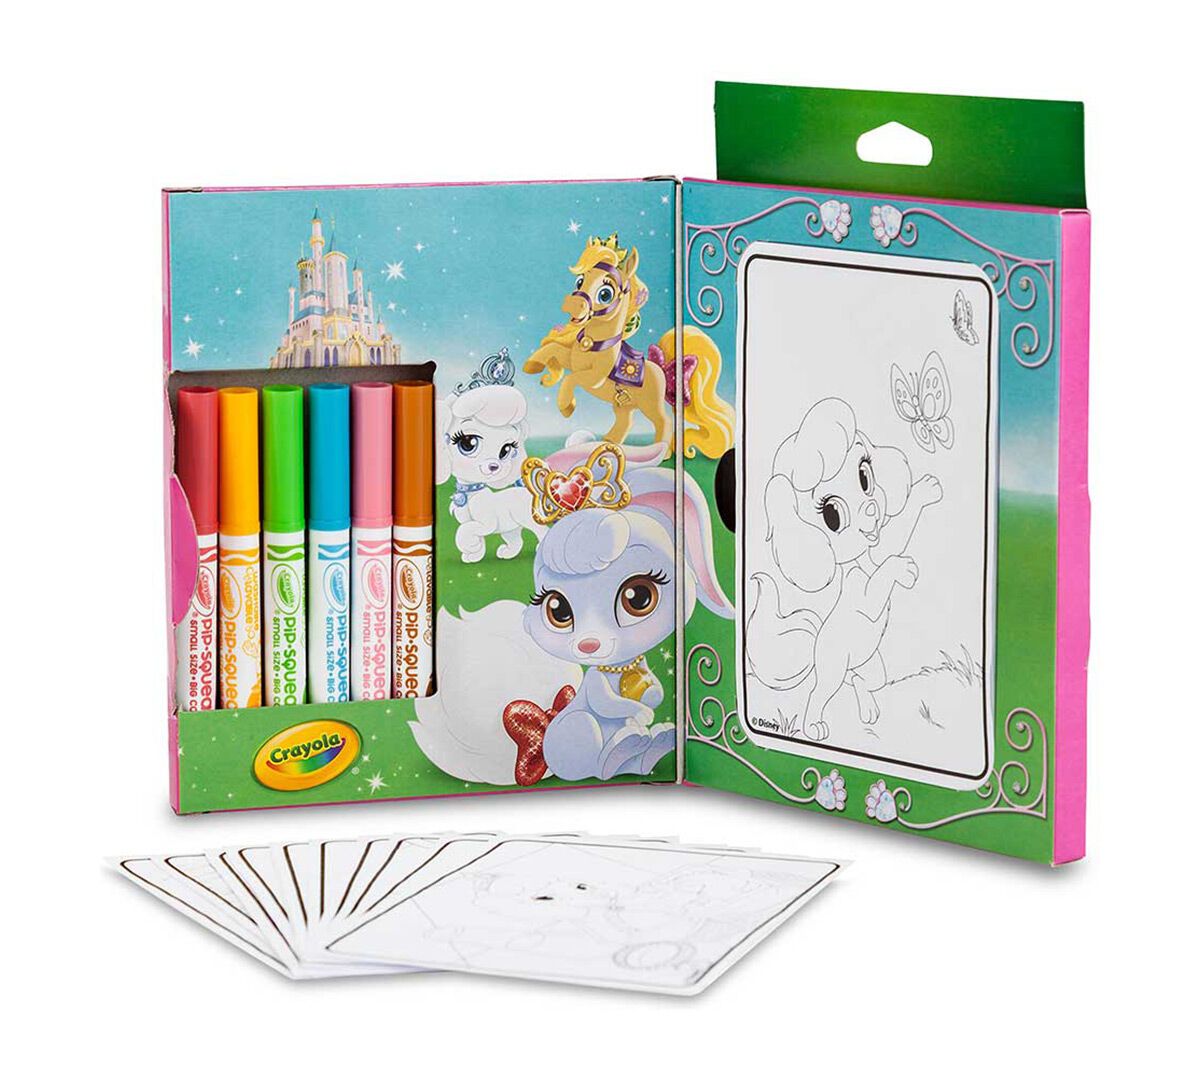 Crayola Mini Coloring Pages - Bltidm